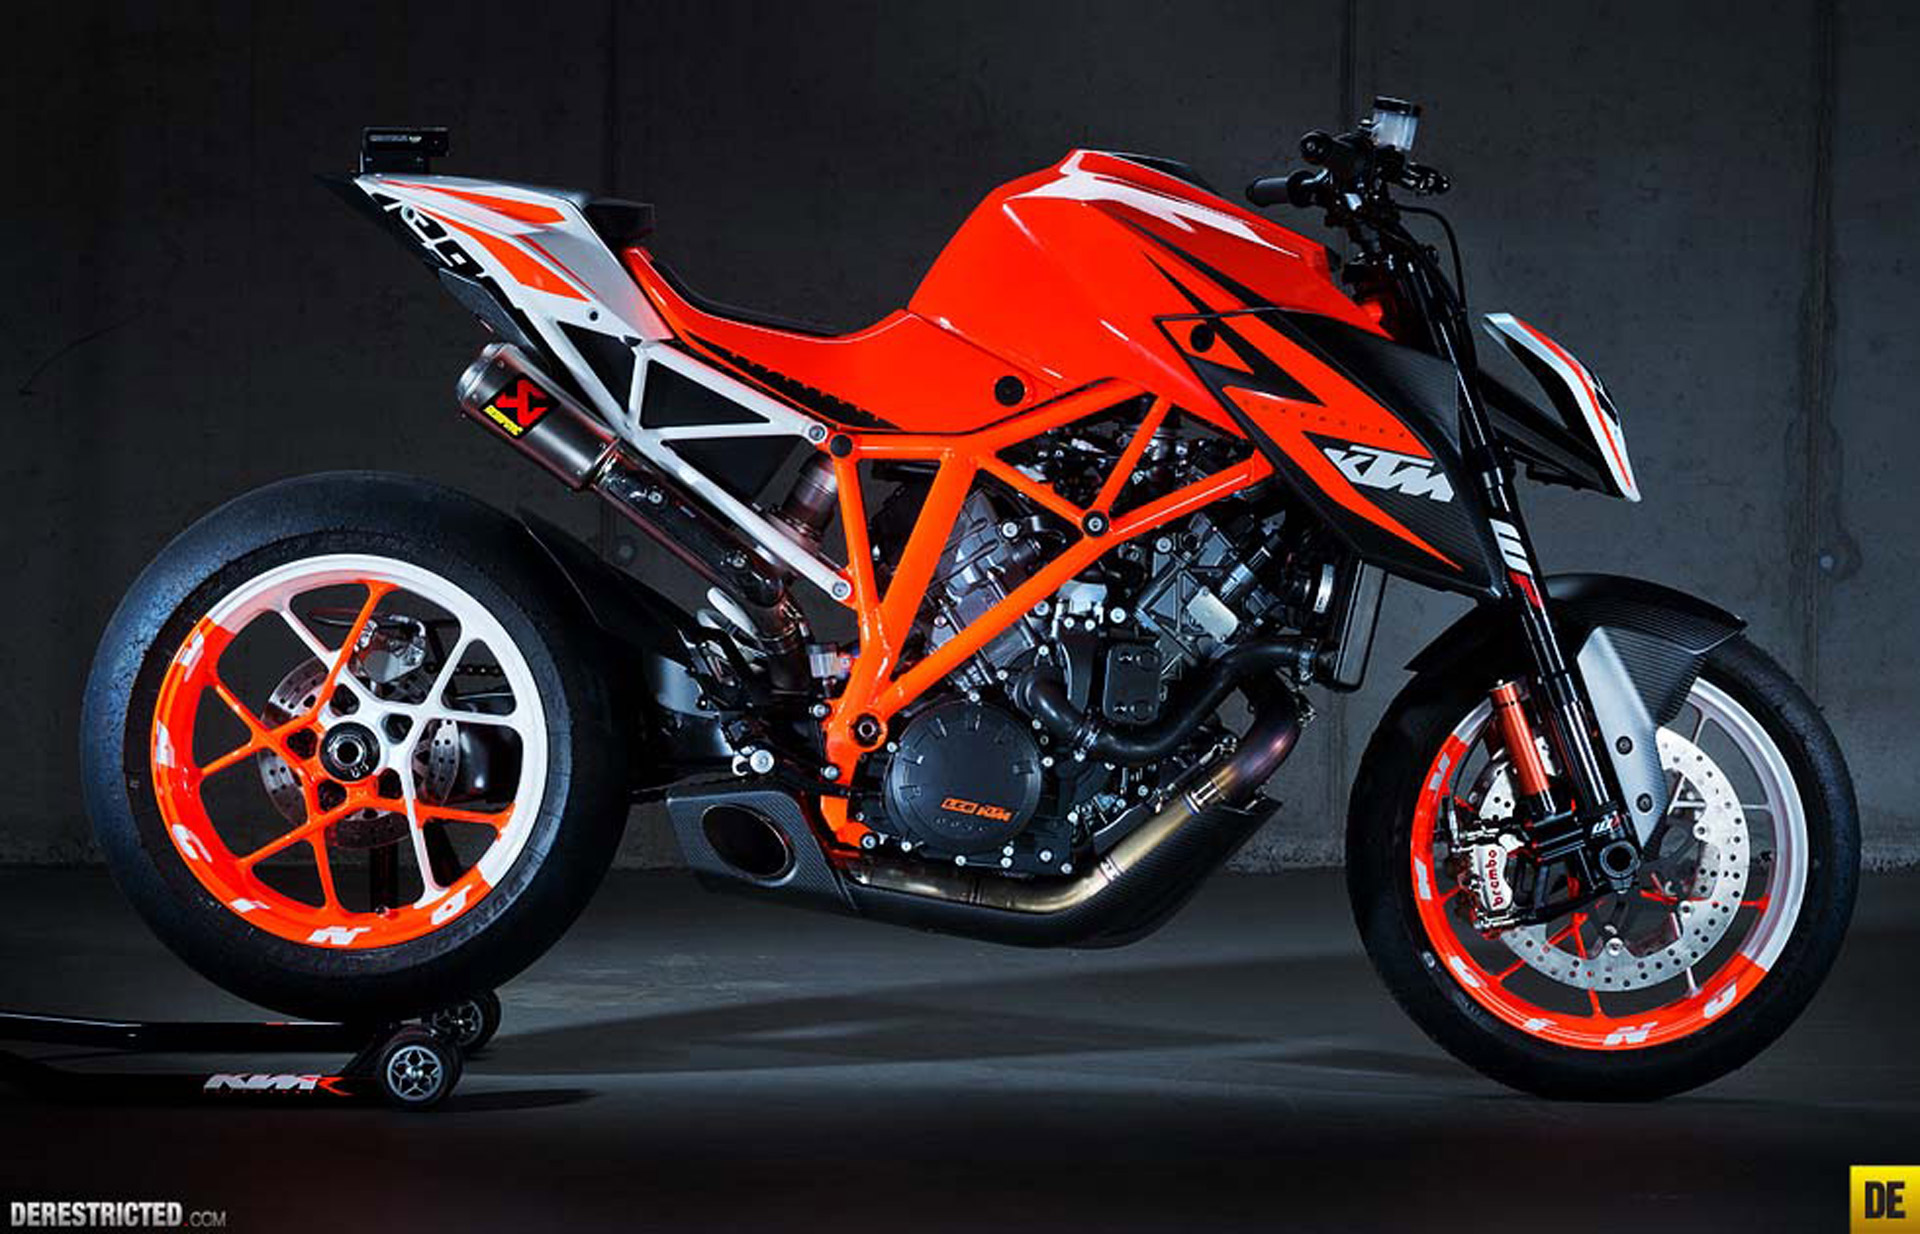 2013 KTM 1290 Super Duke R prototype Concept Bike Specifications 1920x1234